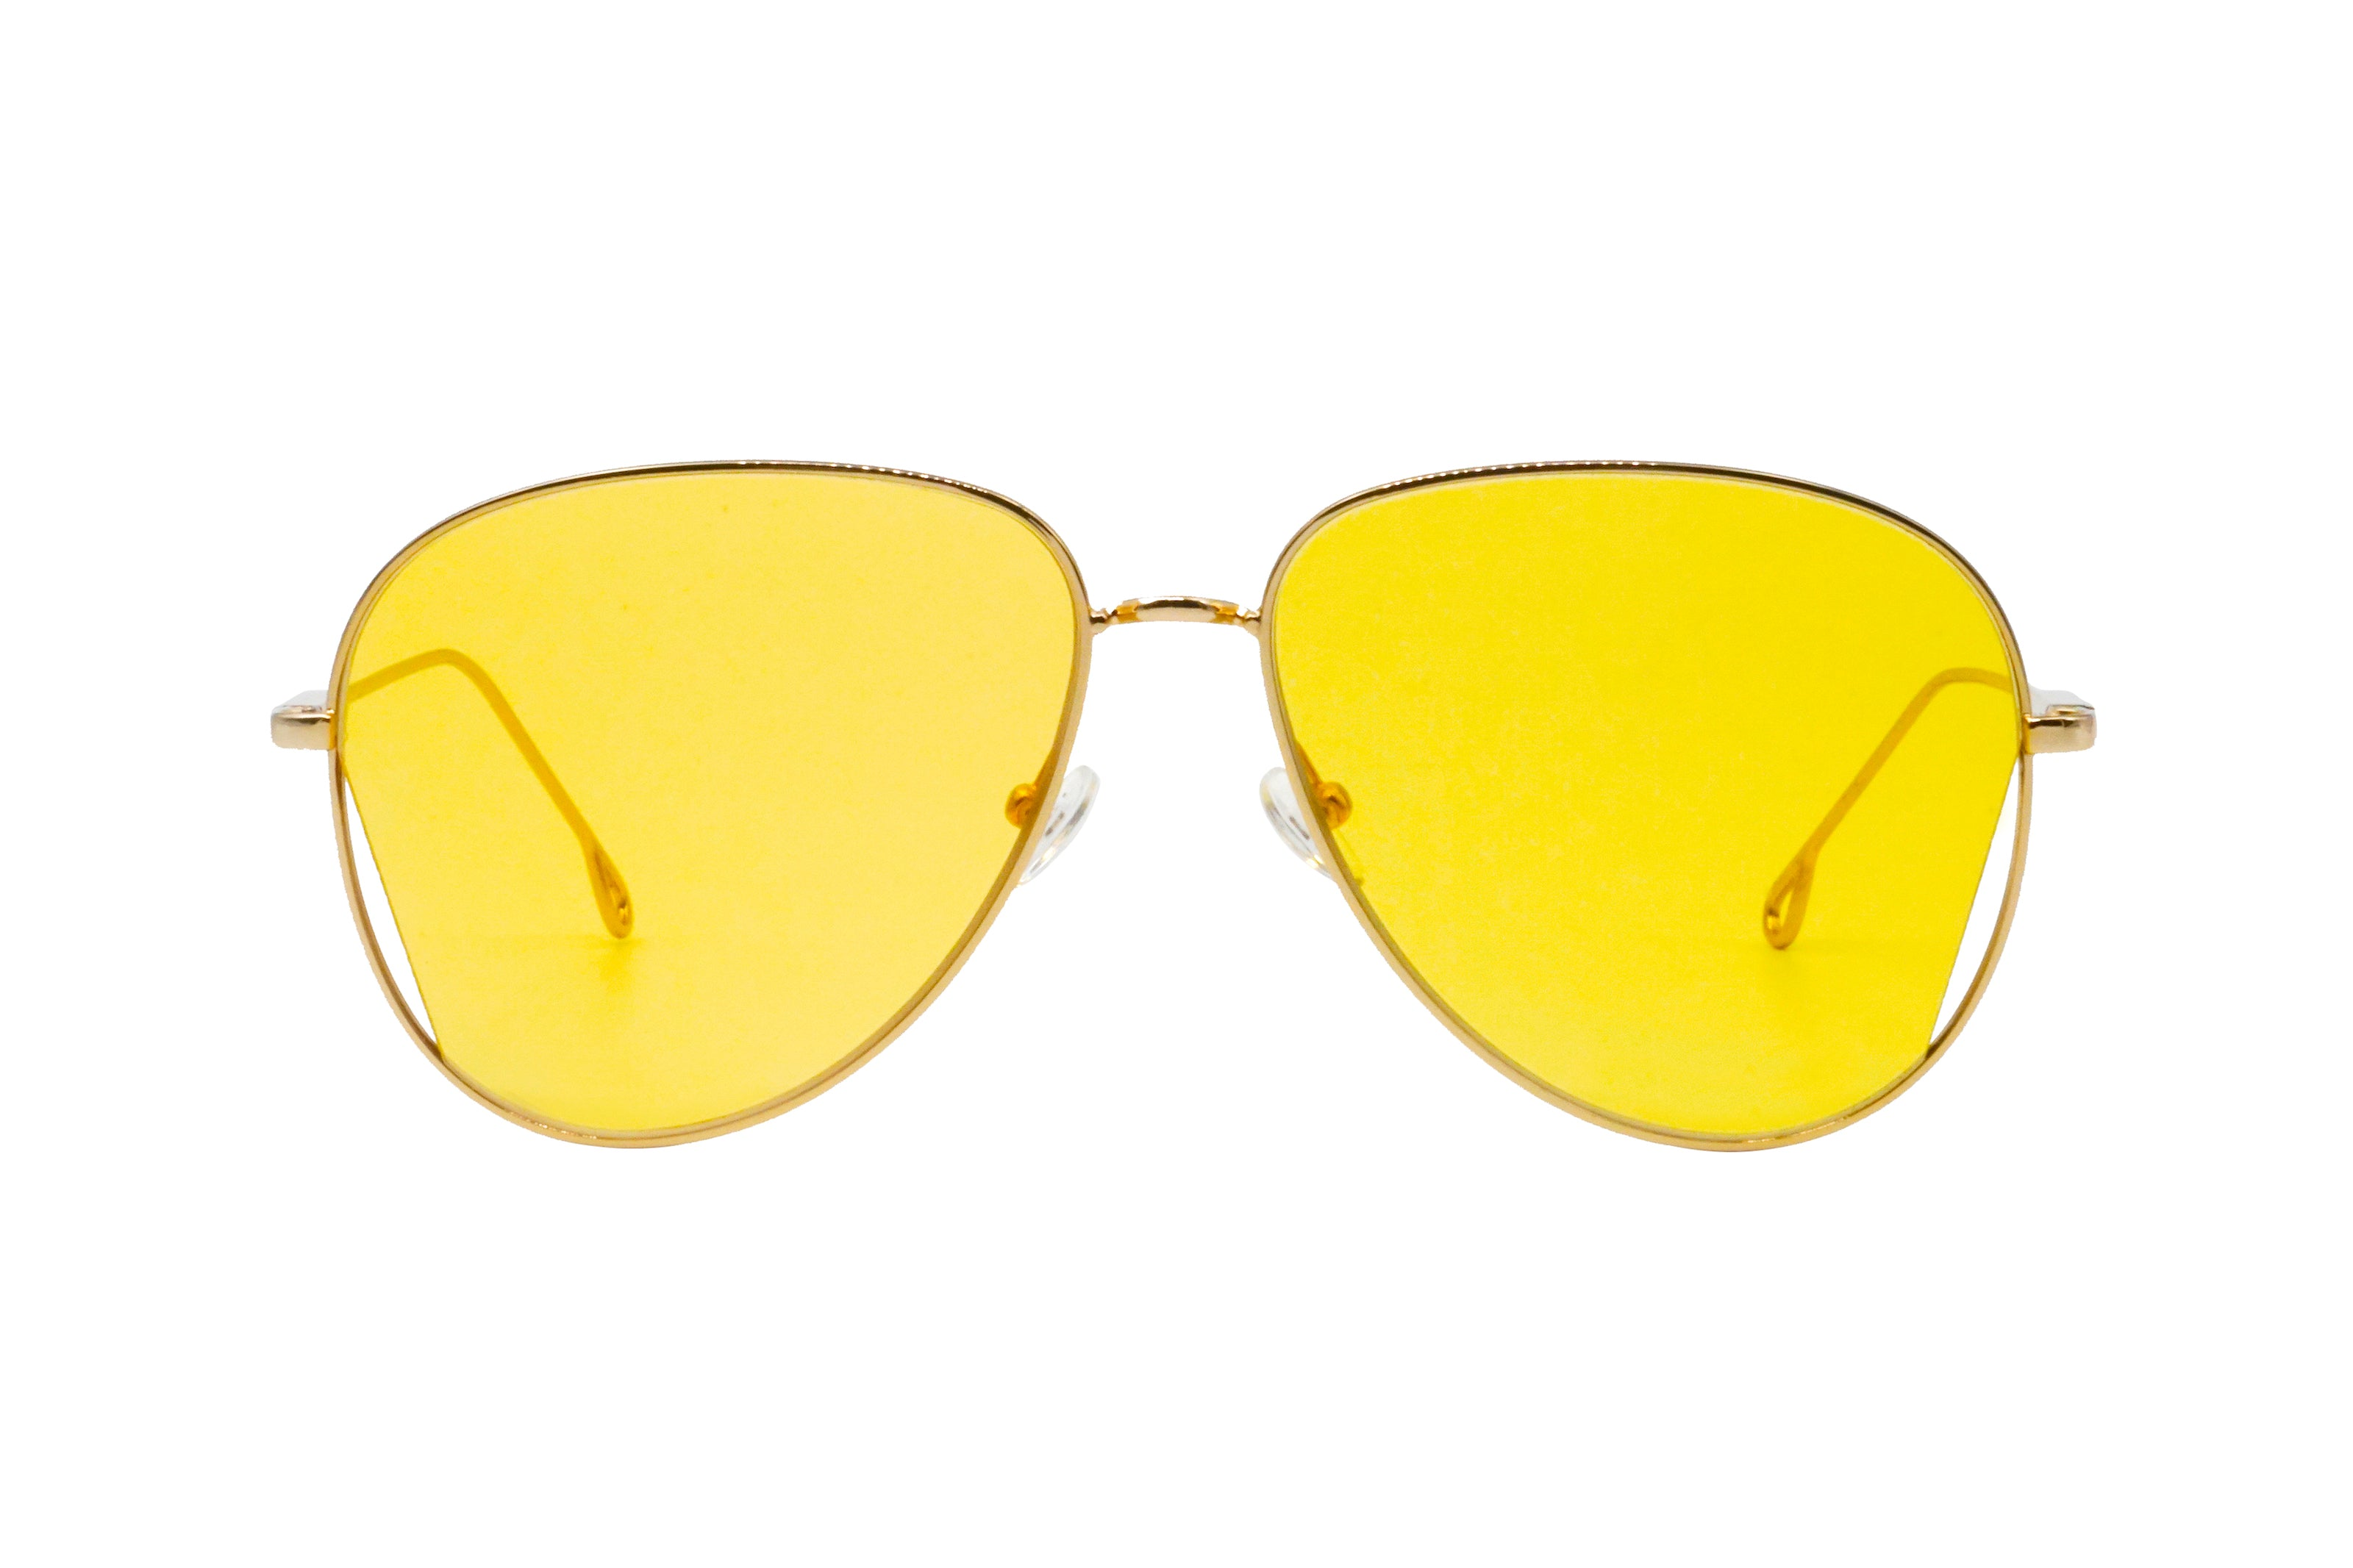 Mansfield in Yellow - Peppertint - Designer sunglasses